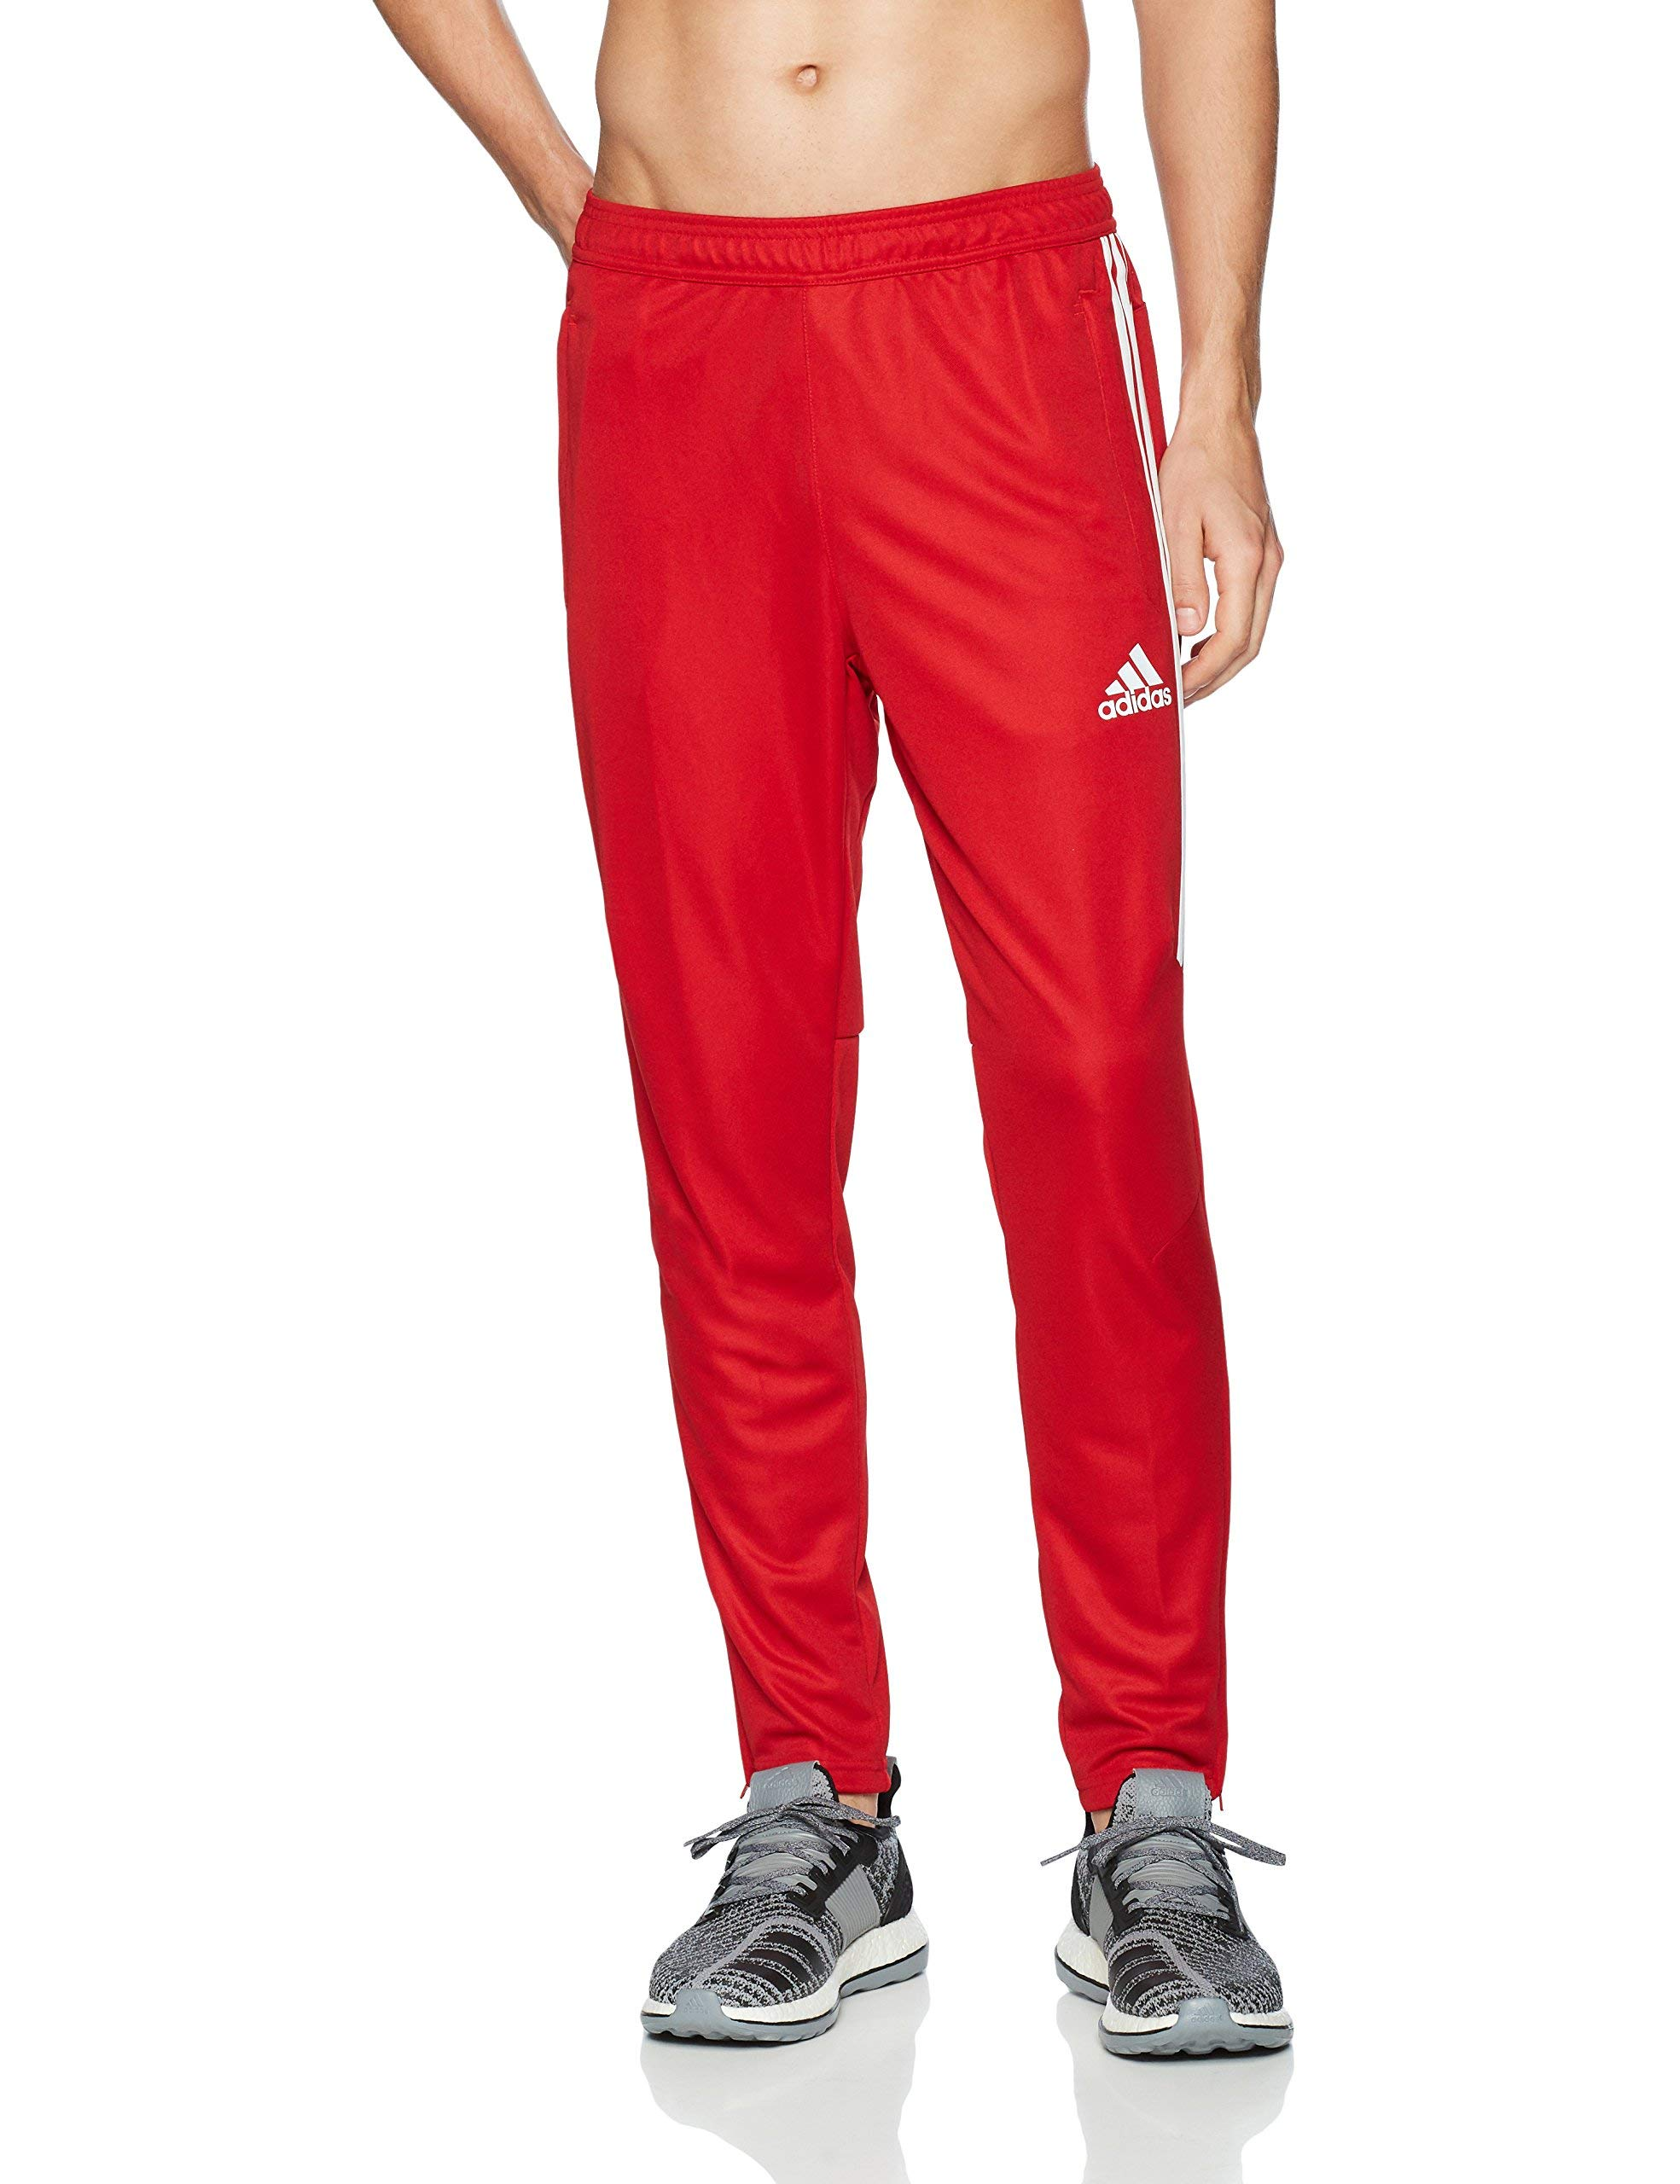 adidas Men's Soccer Tiro 17 Pants, Small, Power Red/White